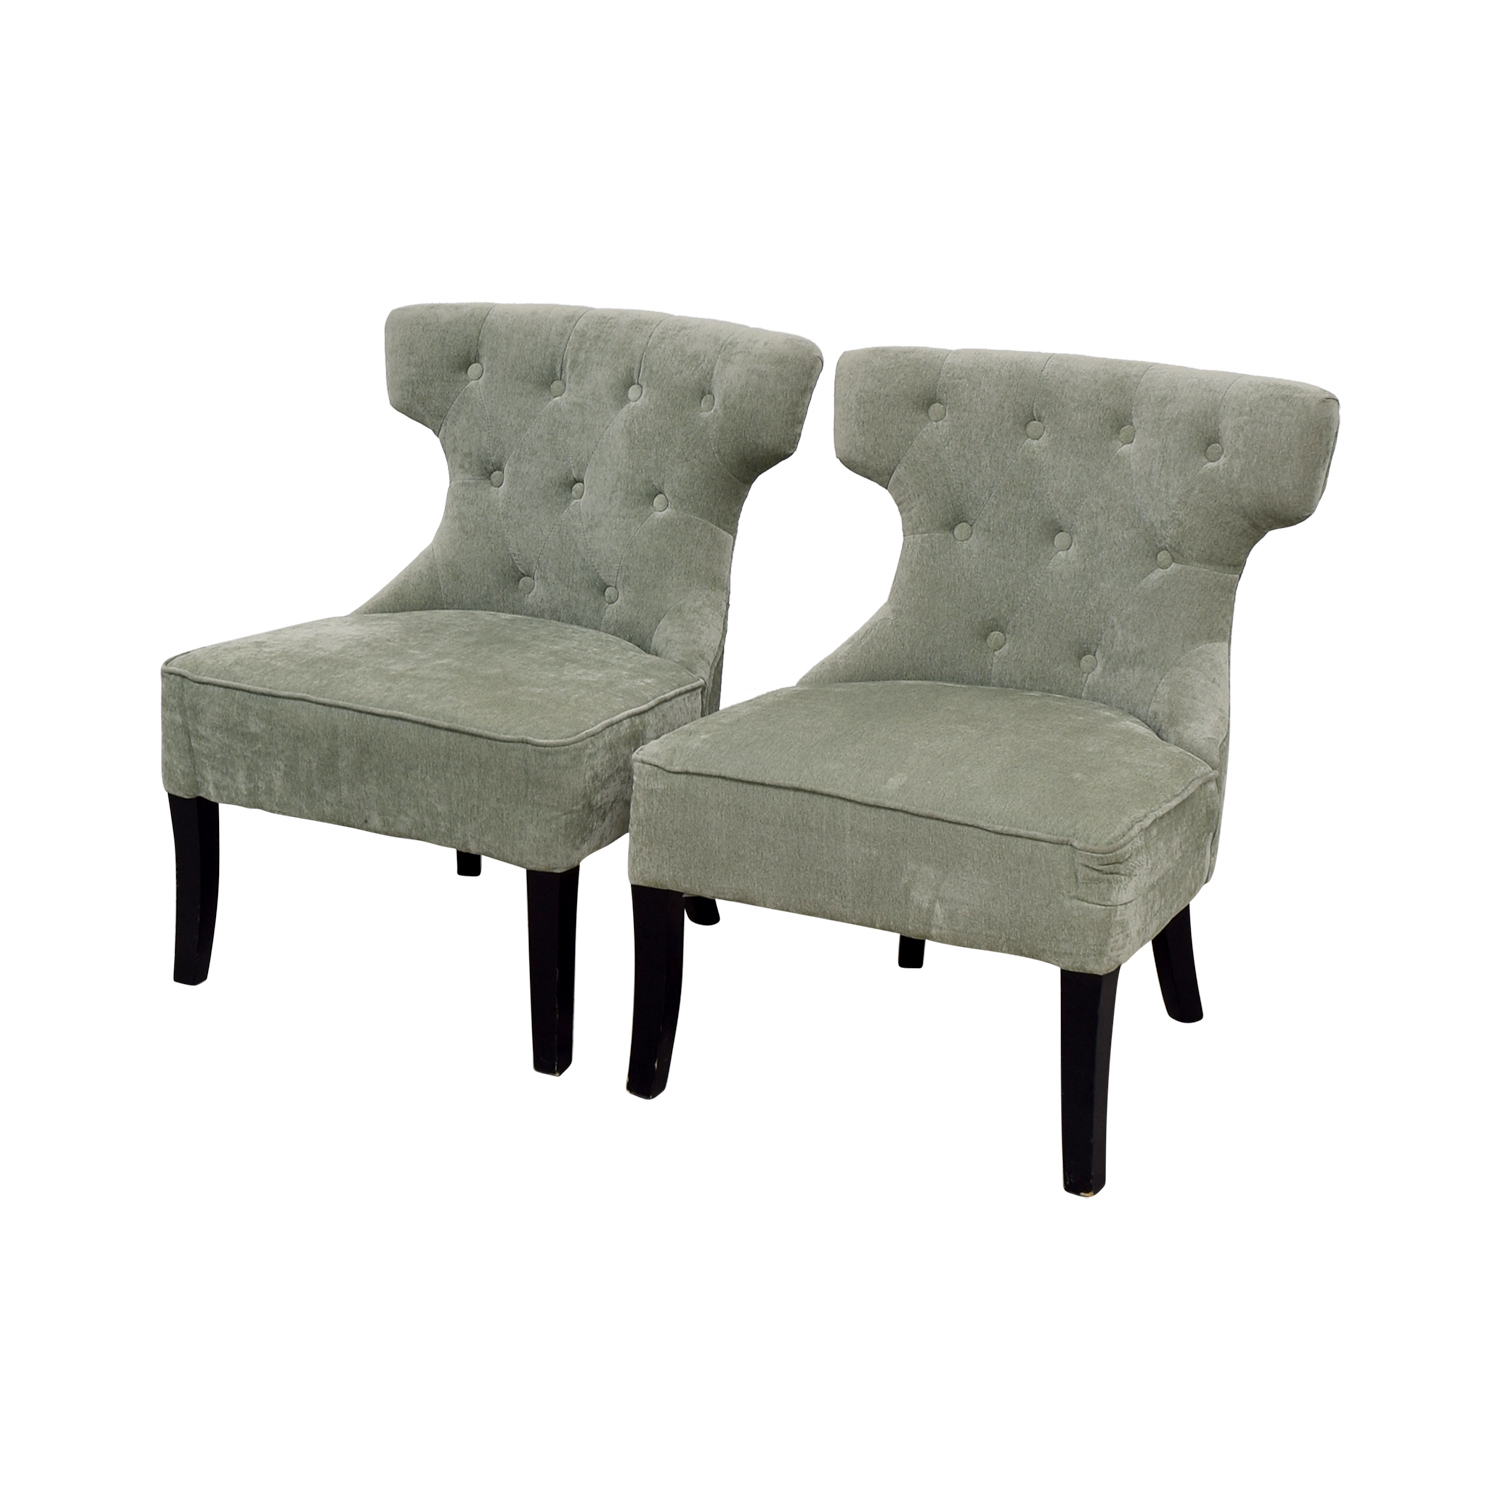 Super 79 Off Allmodern All Modern Ritz Teal Tufted Accent Chairs Chairs Dailytribune Chair Design For Home Dailytribuneorg